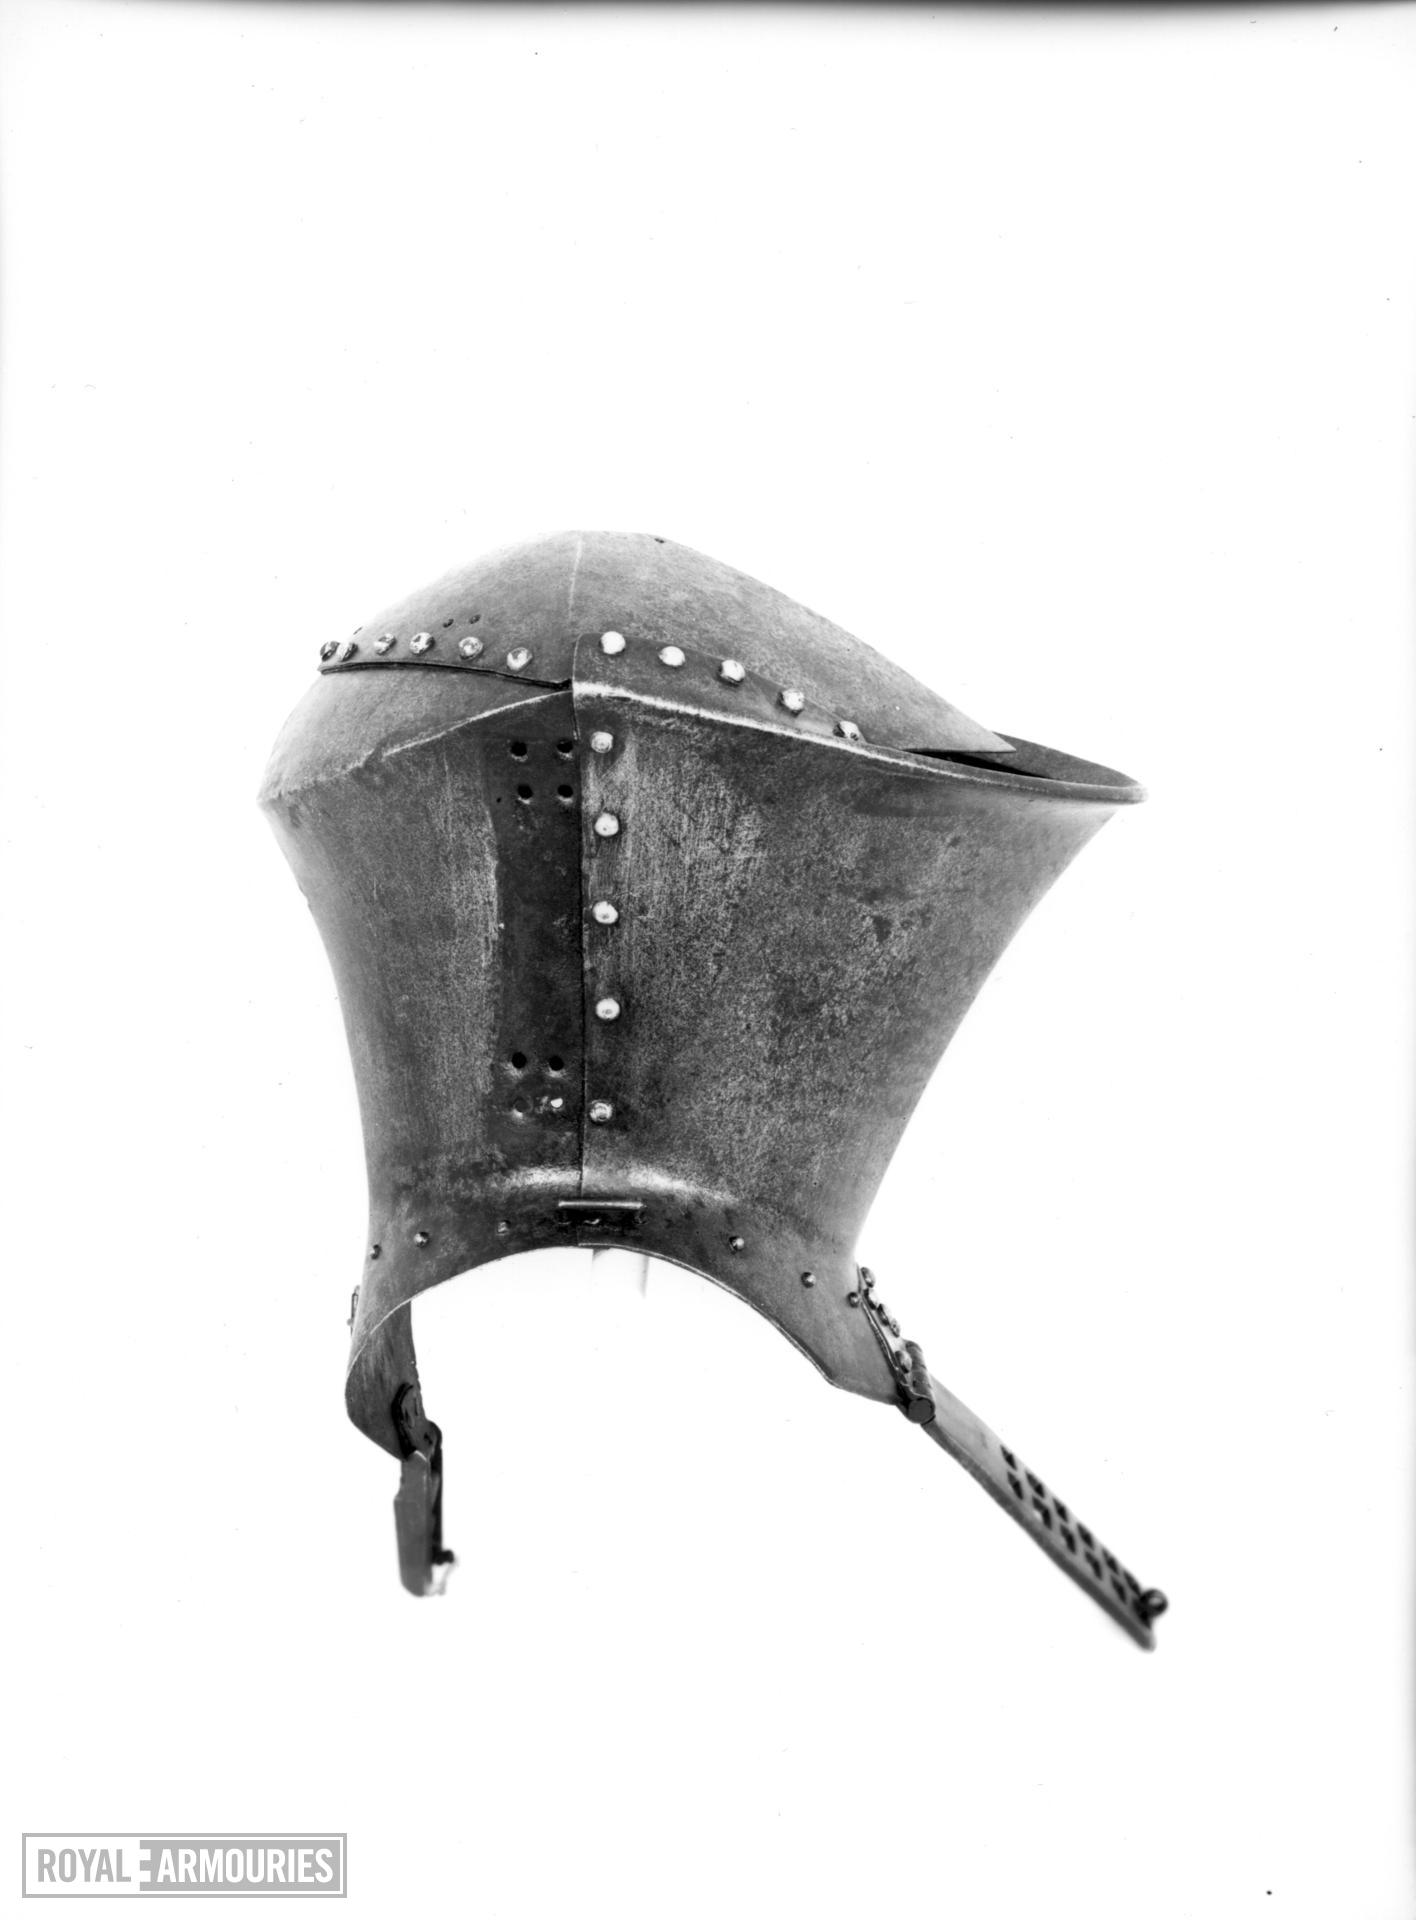 Jousting helm the Brocas helm, for the Gestech